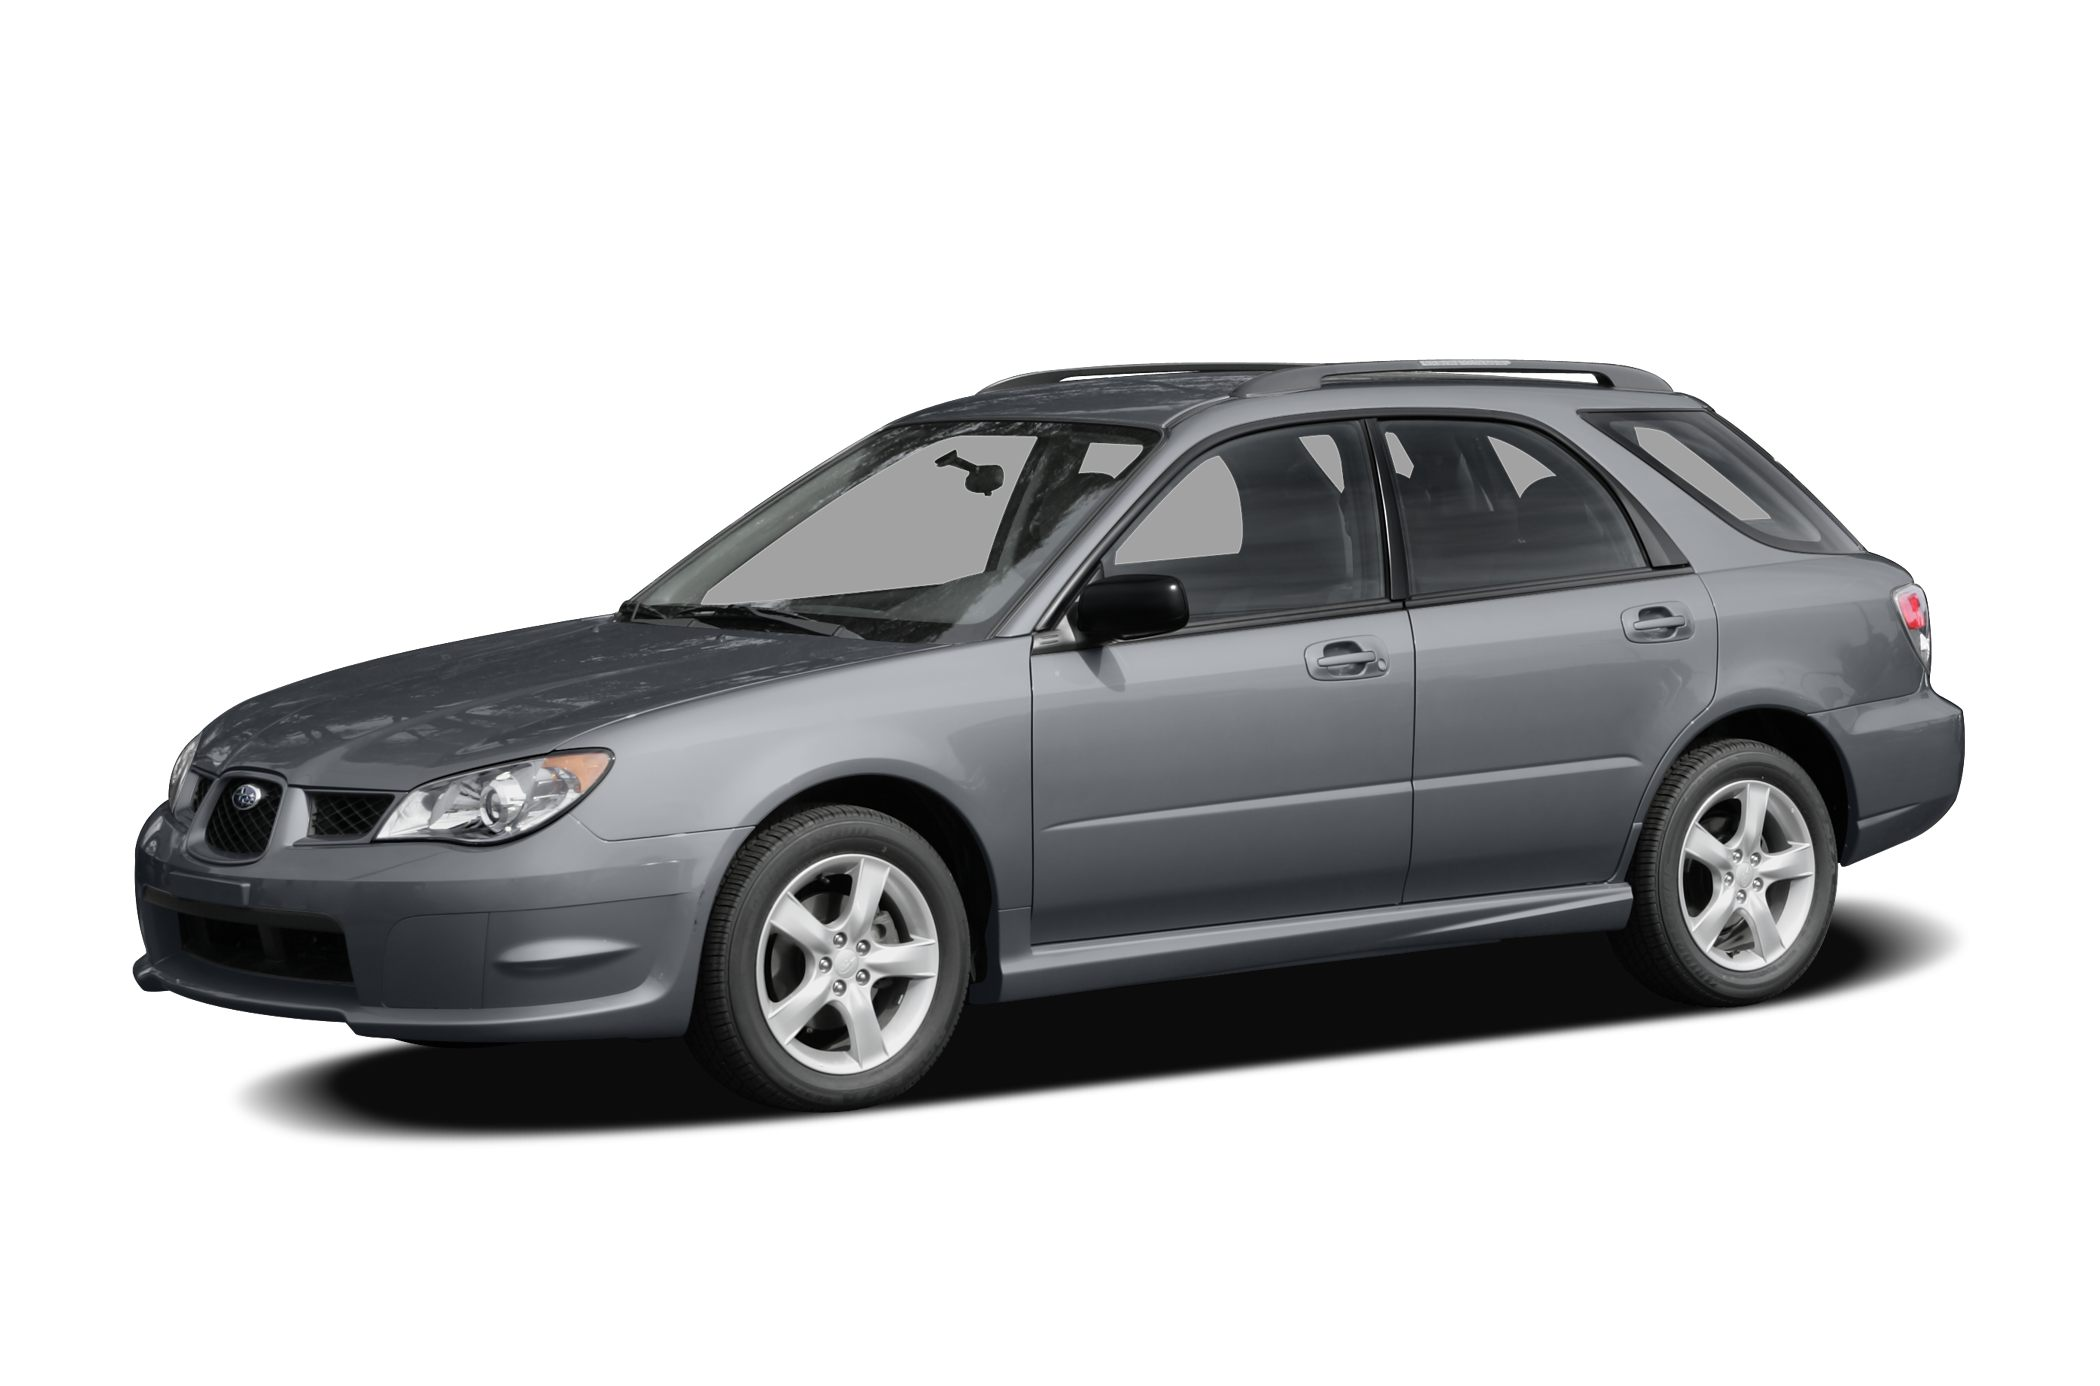 2007 Subaru Impreza 25i FREE FIRST YEAR MAINTENANCE and ONE OWNER LOCAL TRADE 4 Speakers